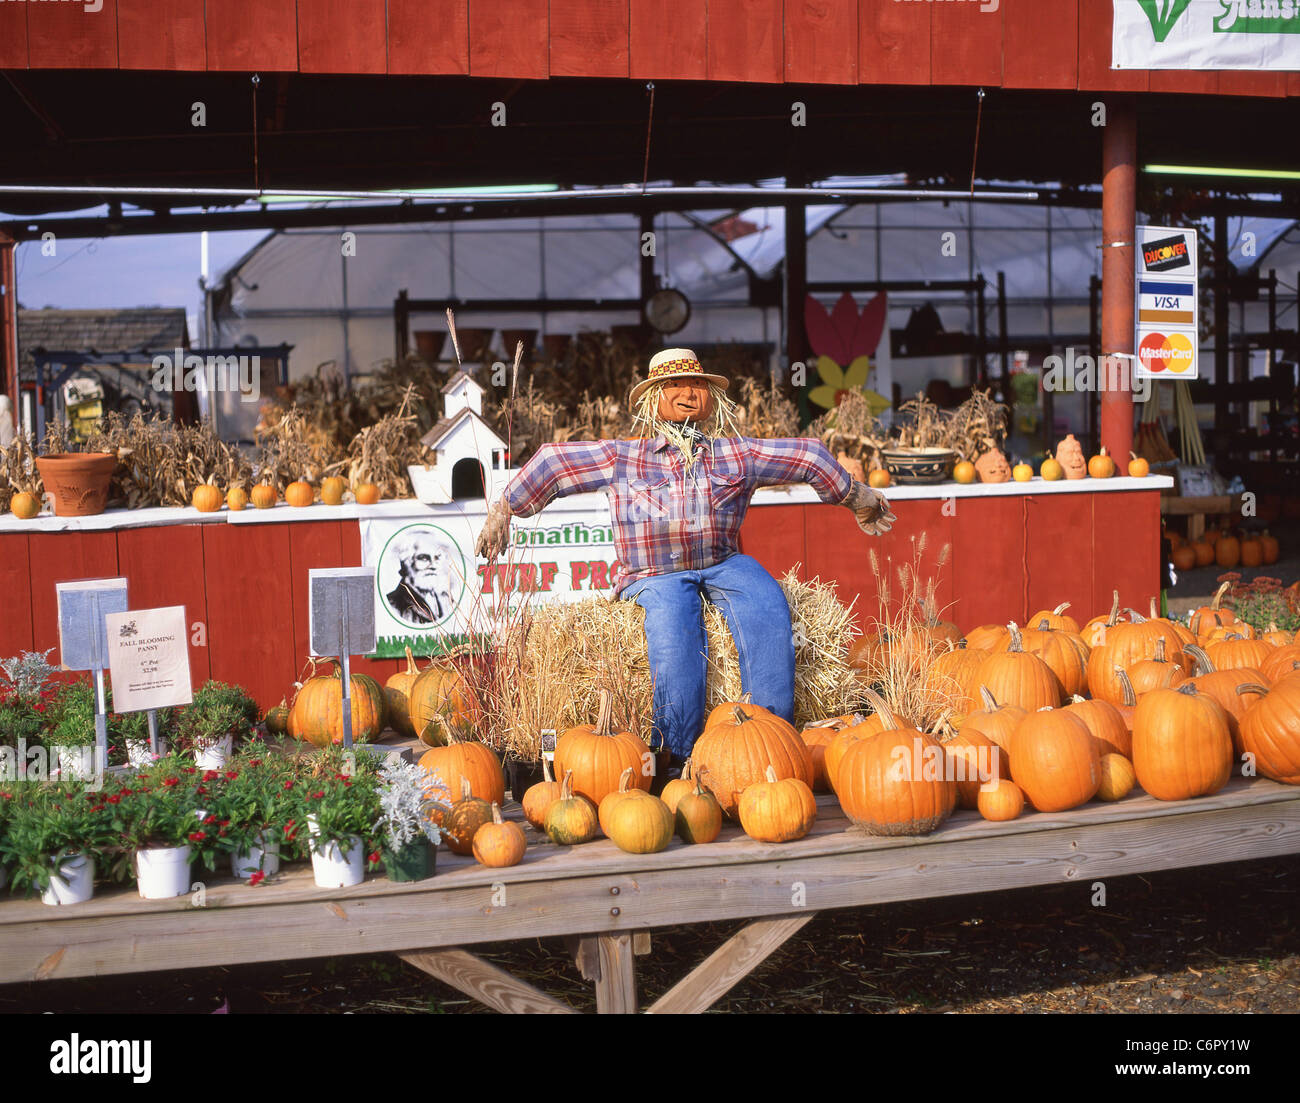 Pumpkin roadside stall with scarecrow, Connecticut, United States of America - Stock Image